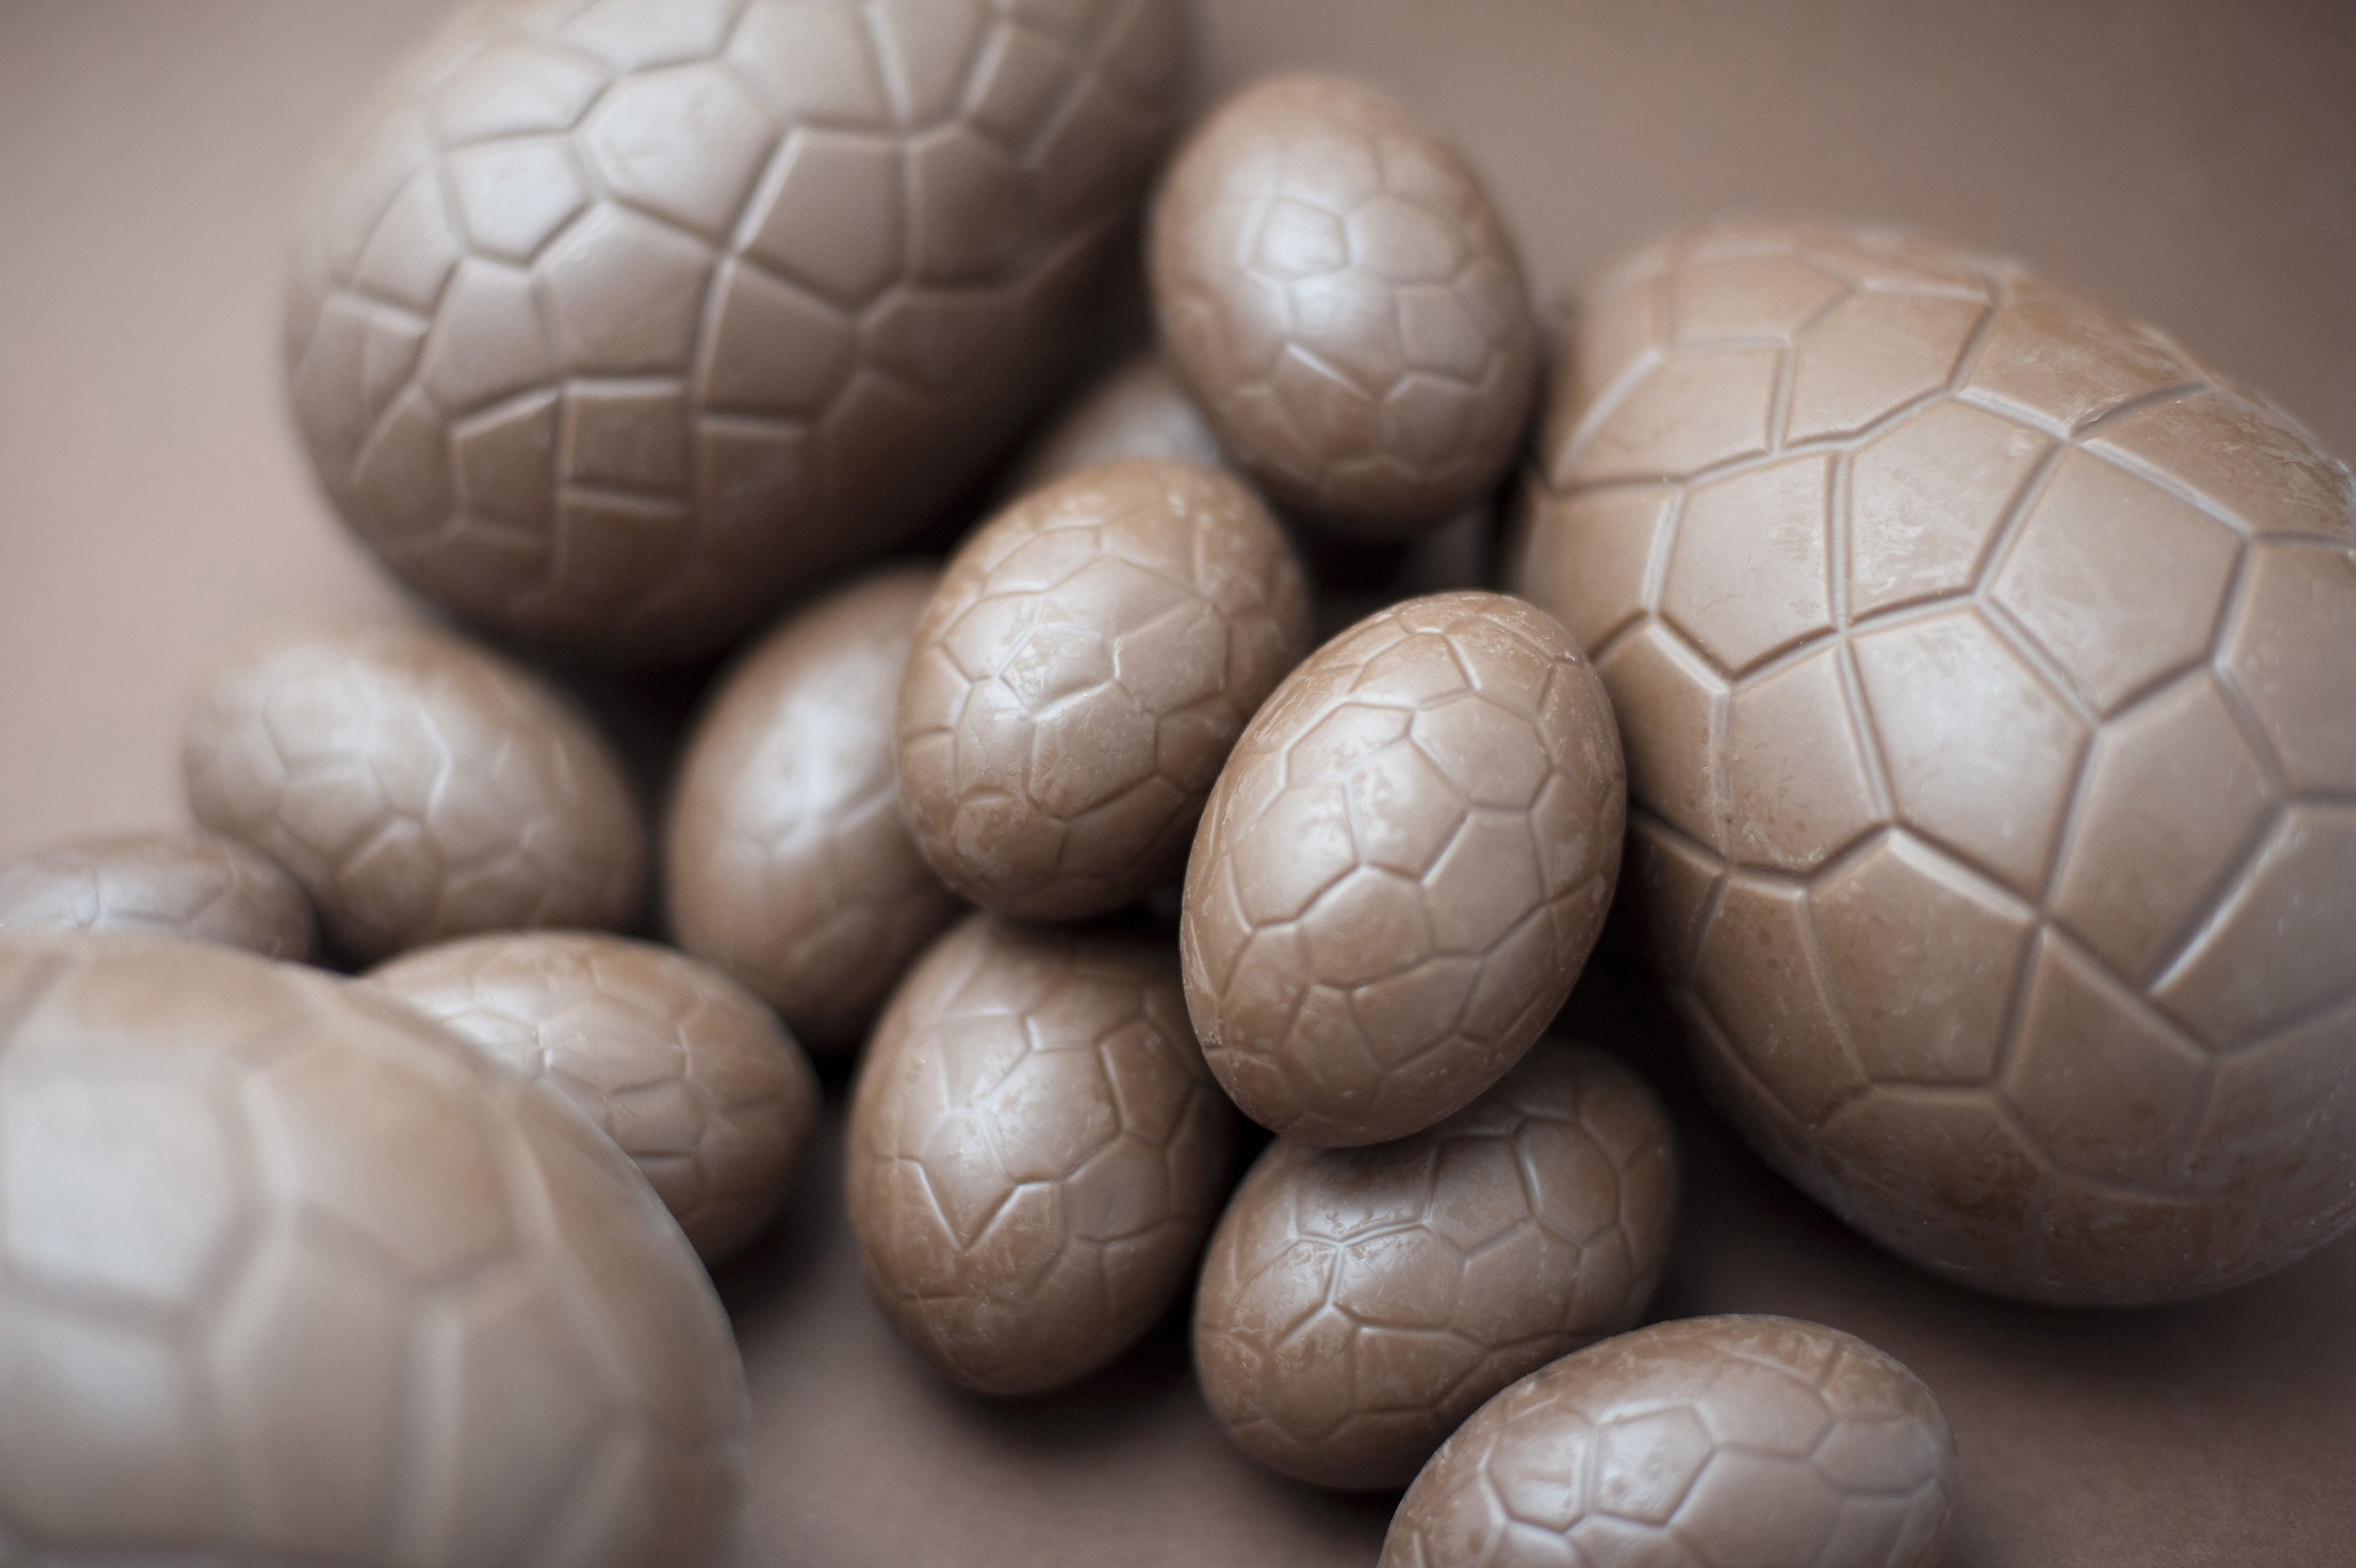 chocolate_eggs.jpg - Assorted unwrapped milk chocolate Easter Eggs of different sizes on a brown background